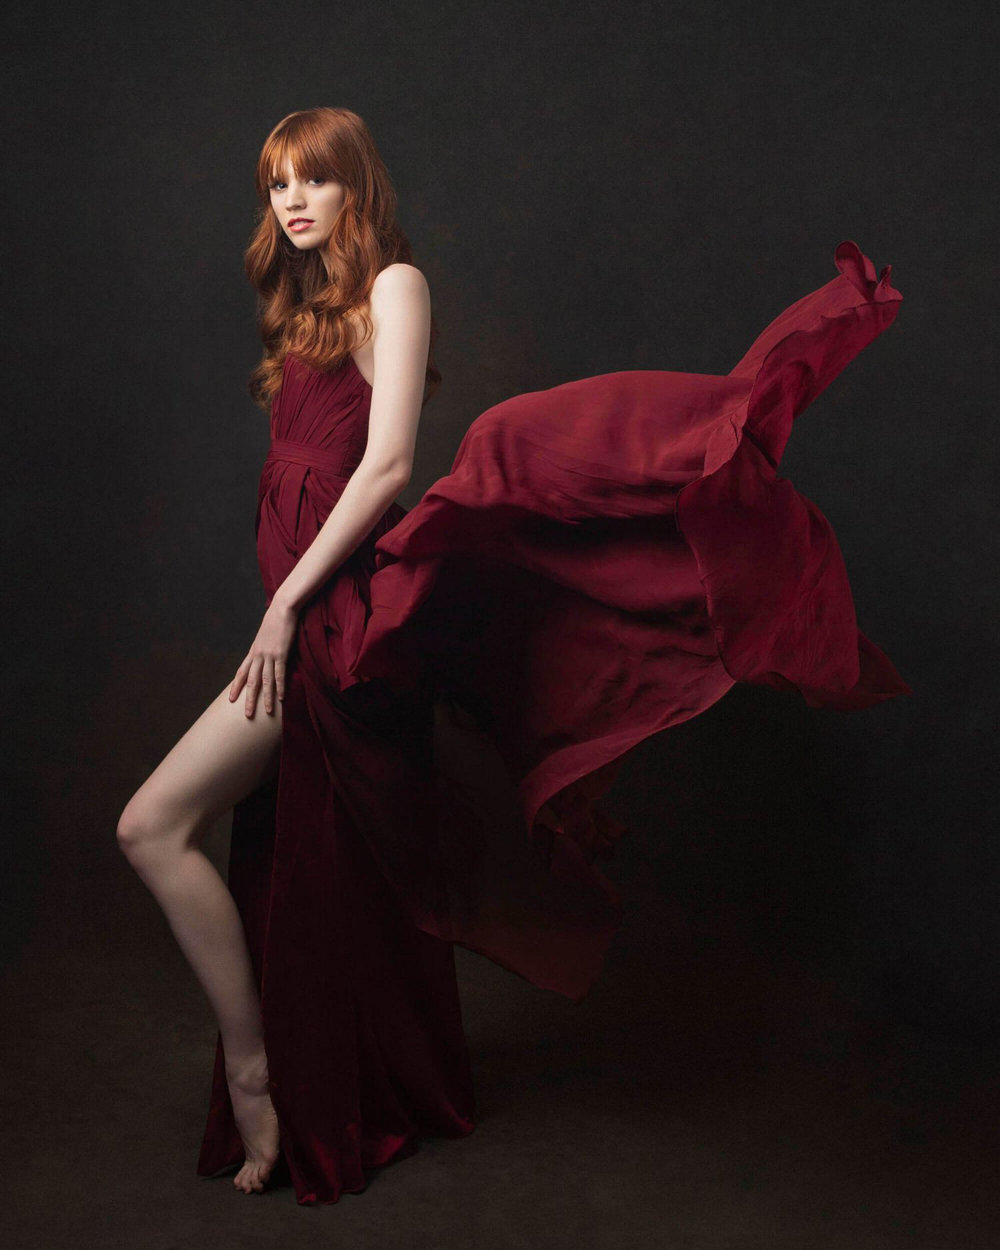 Red-dress glamour portrait photography Starnberg